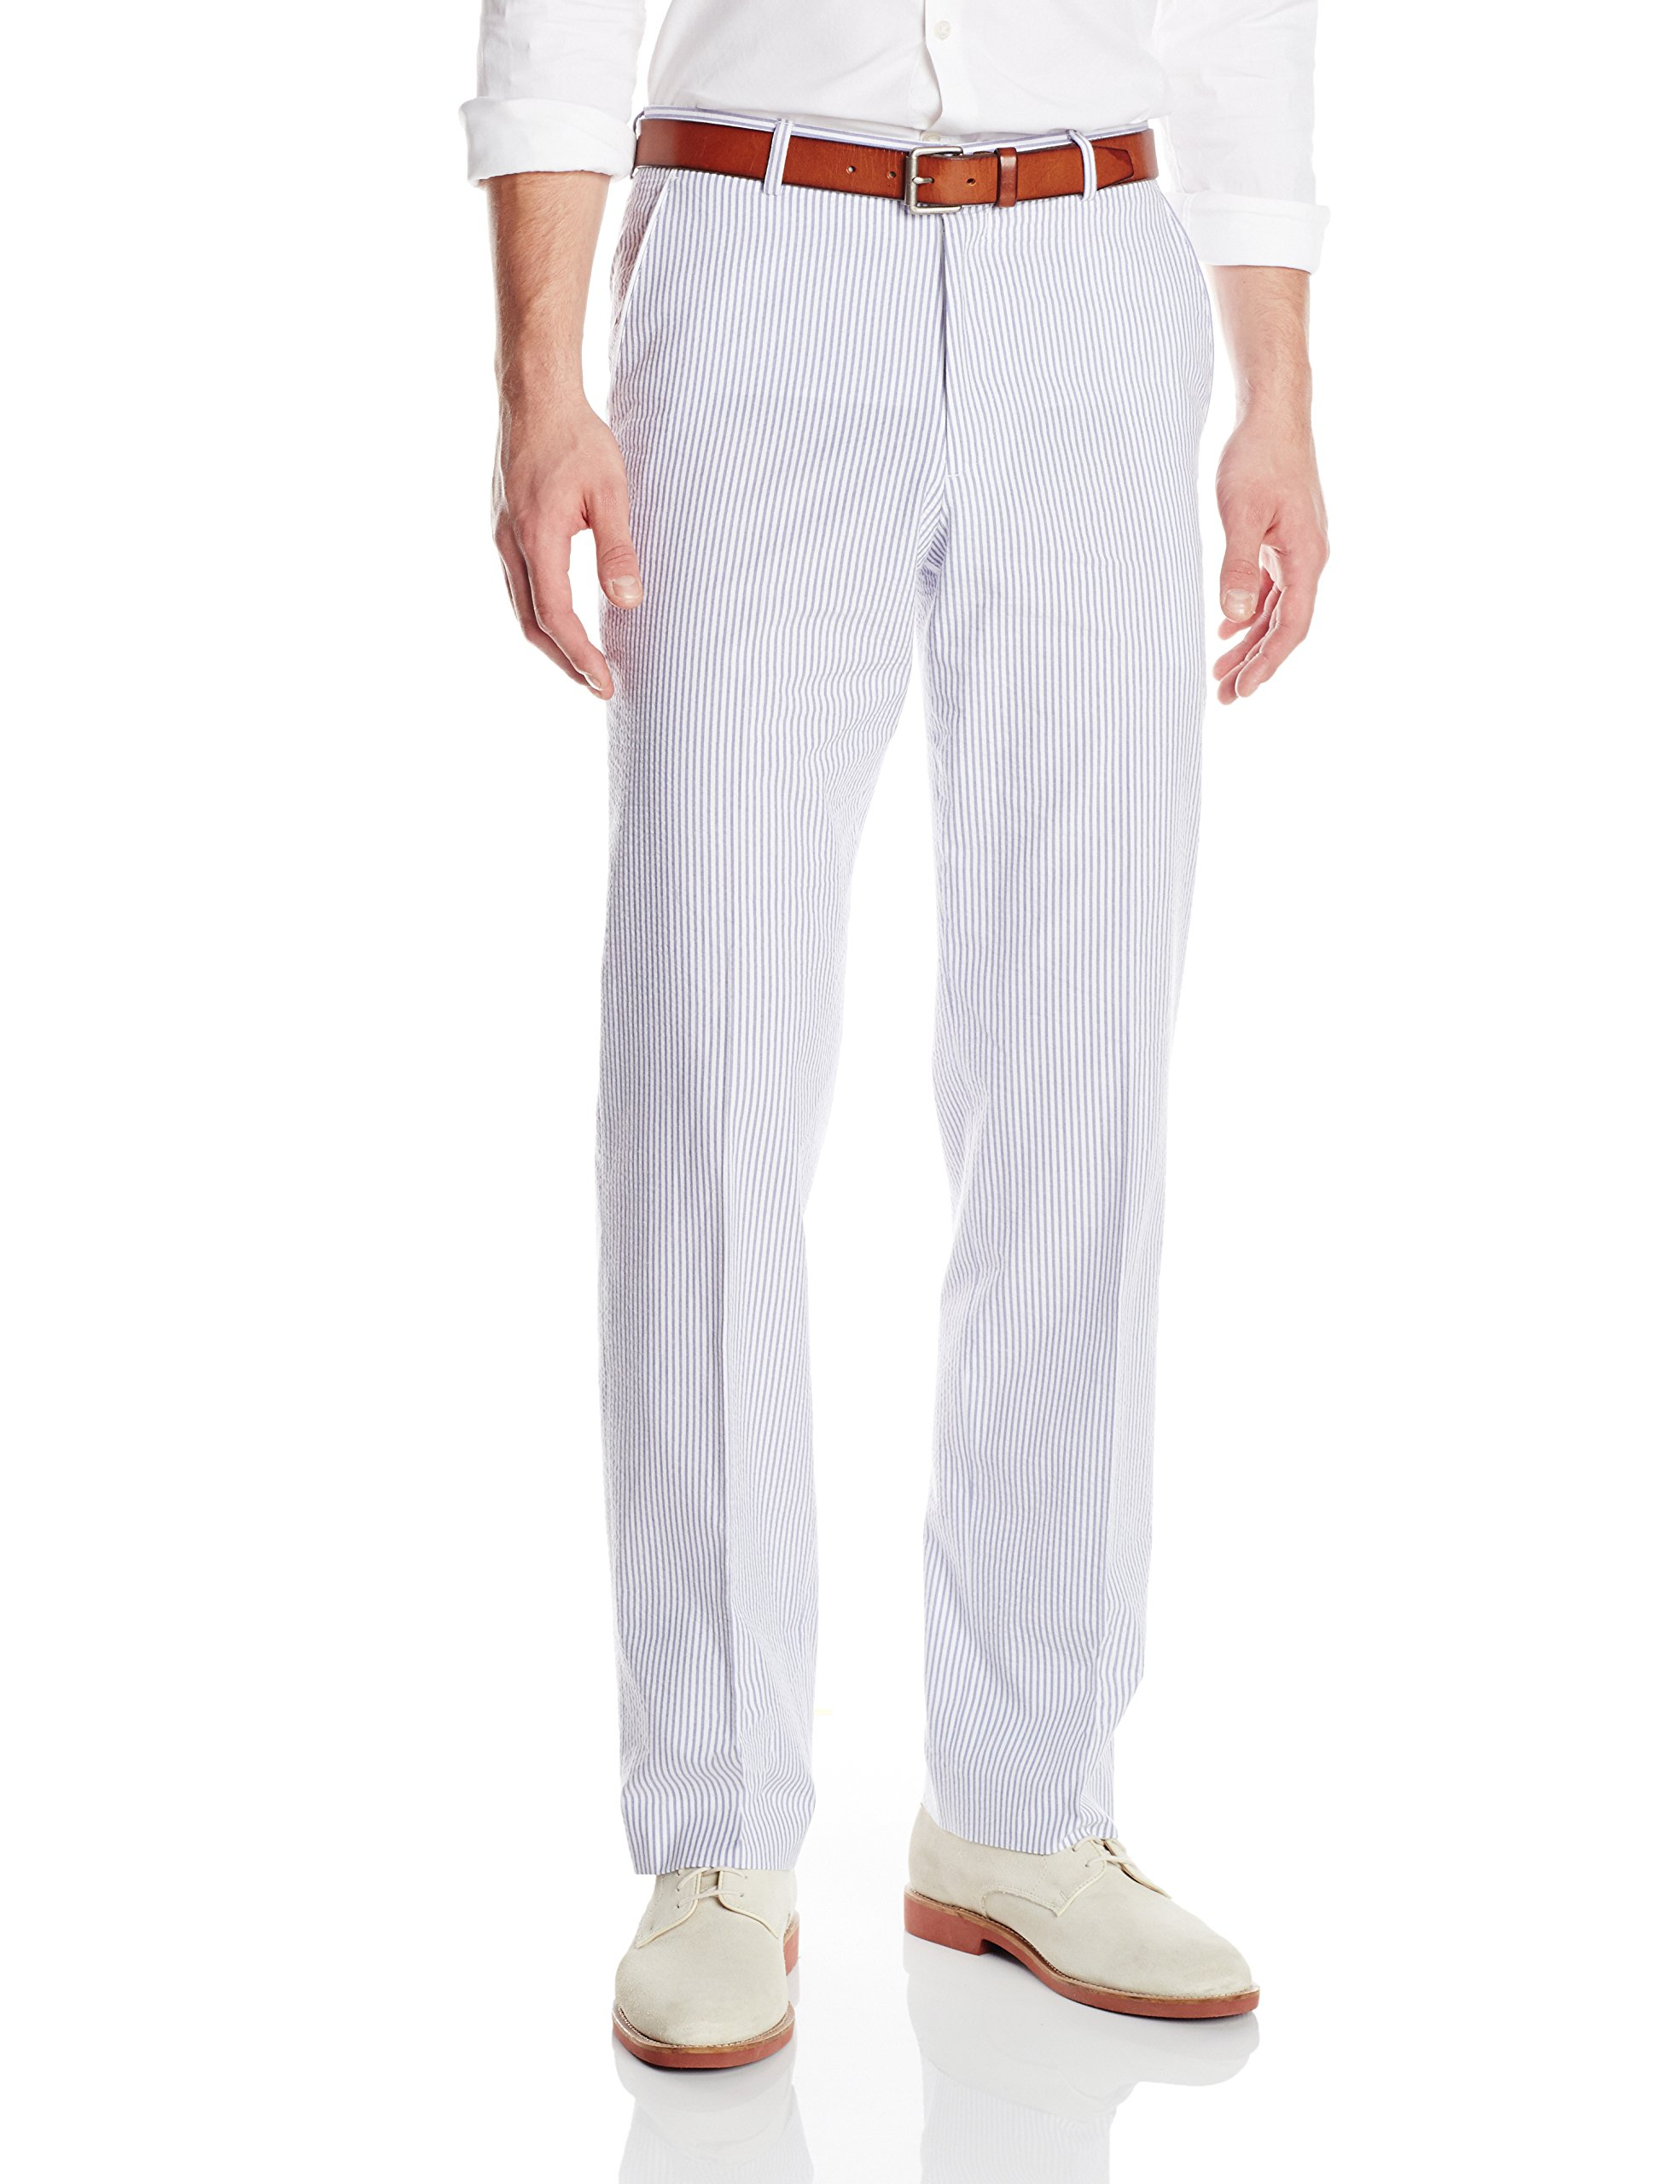 Palm Beach Men's Oxford Seersucker Suit Separate Pant, Navy/White, 36 Regular by Palm Beach